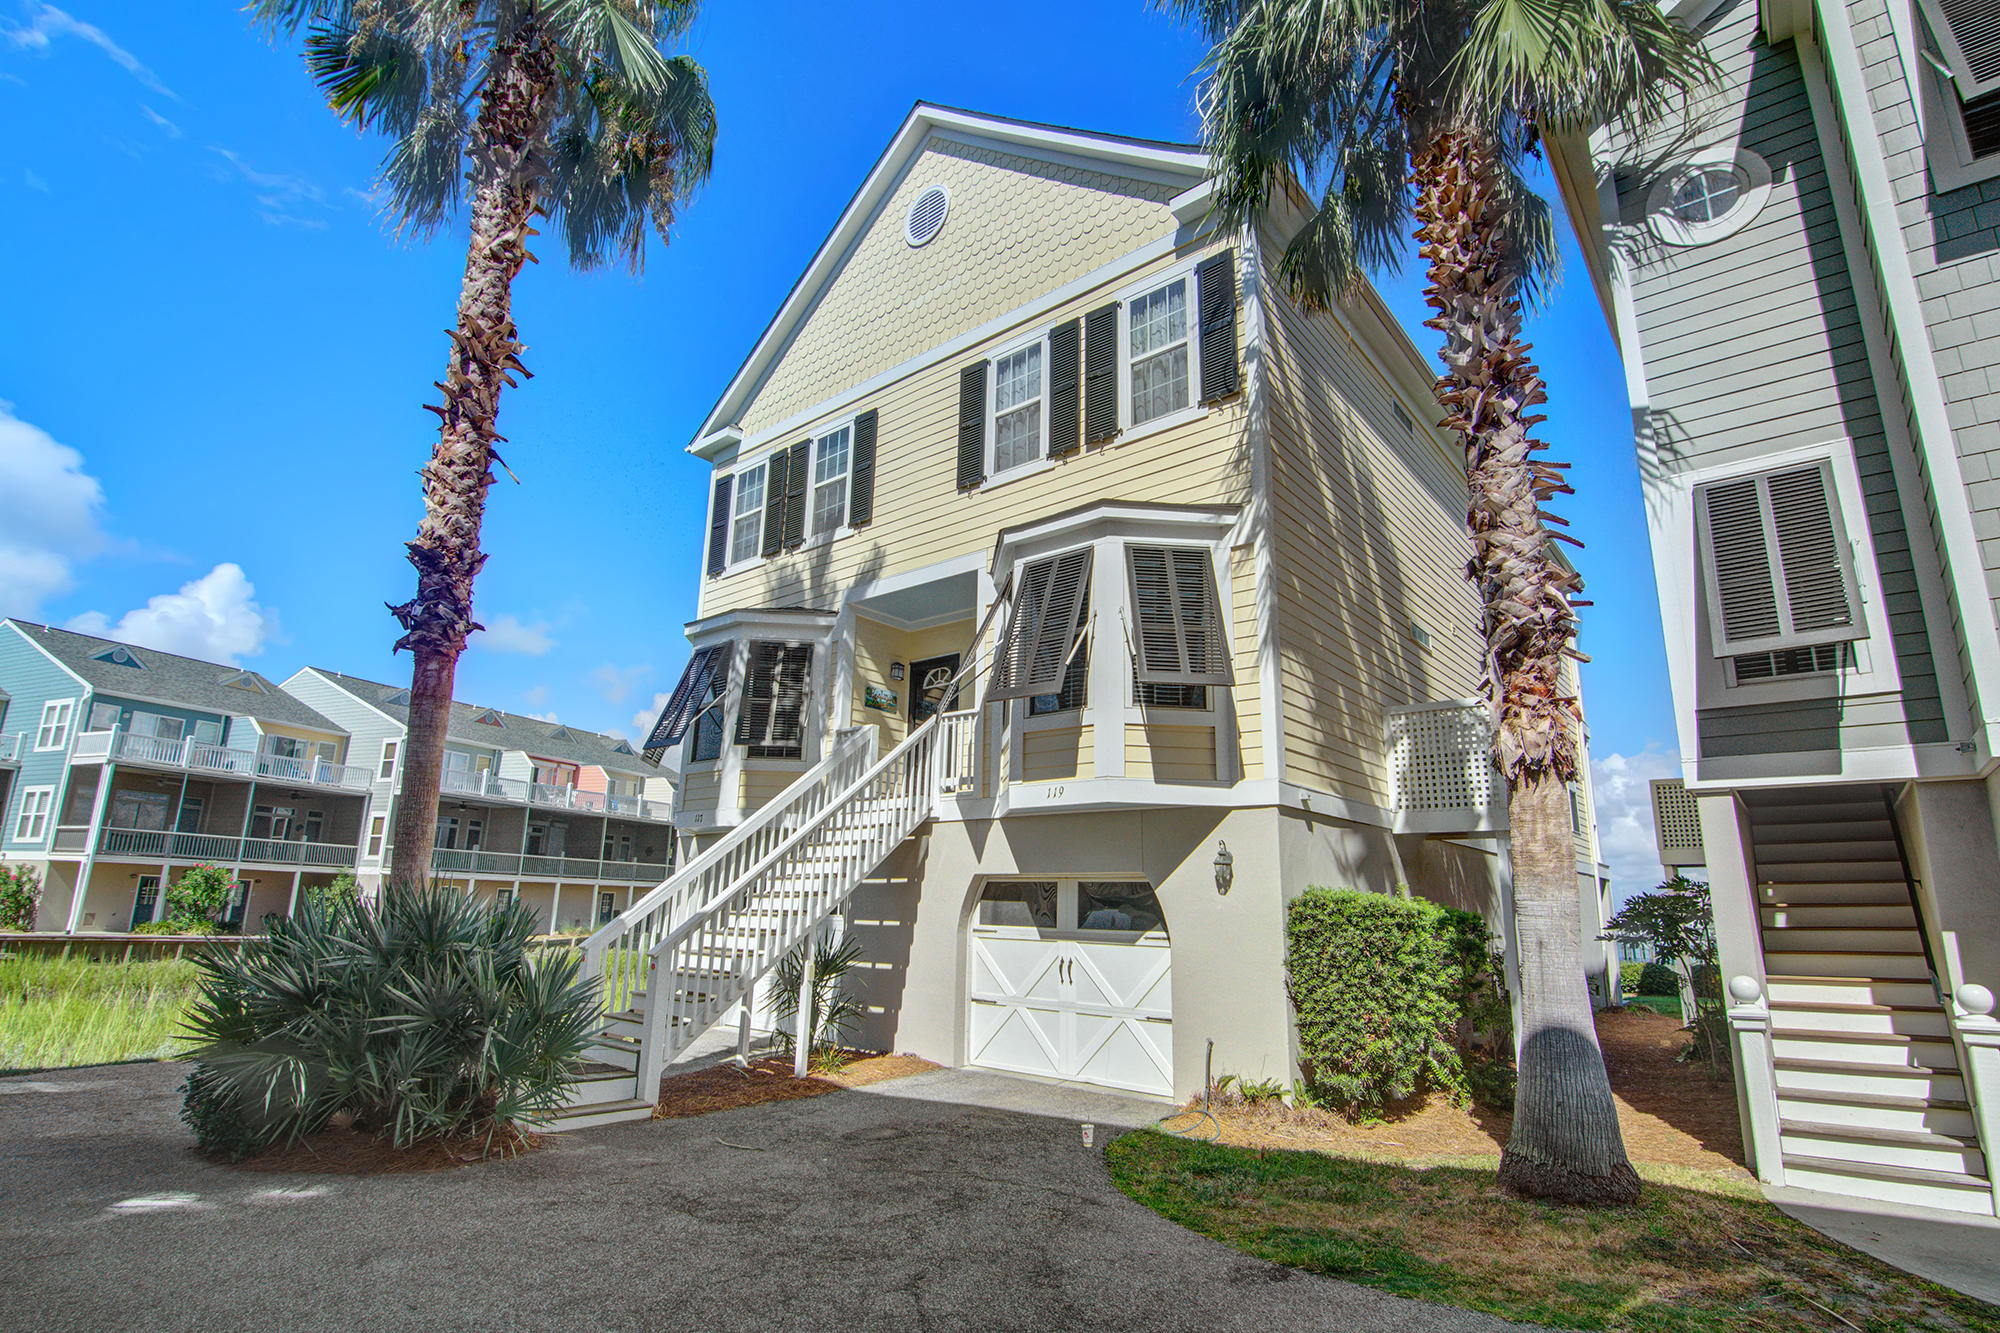 Waters Edge Homes For Sale - 119 2nd, Folly Beach, SC - 4